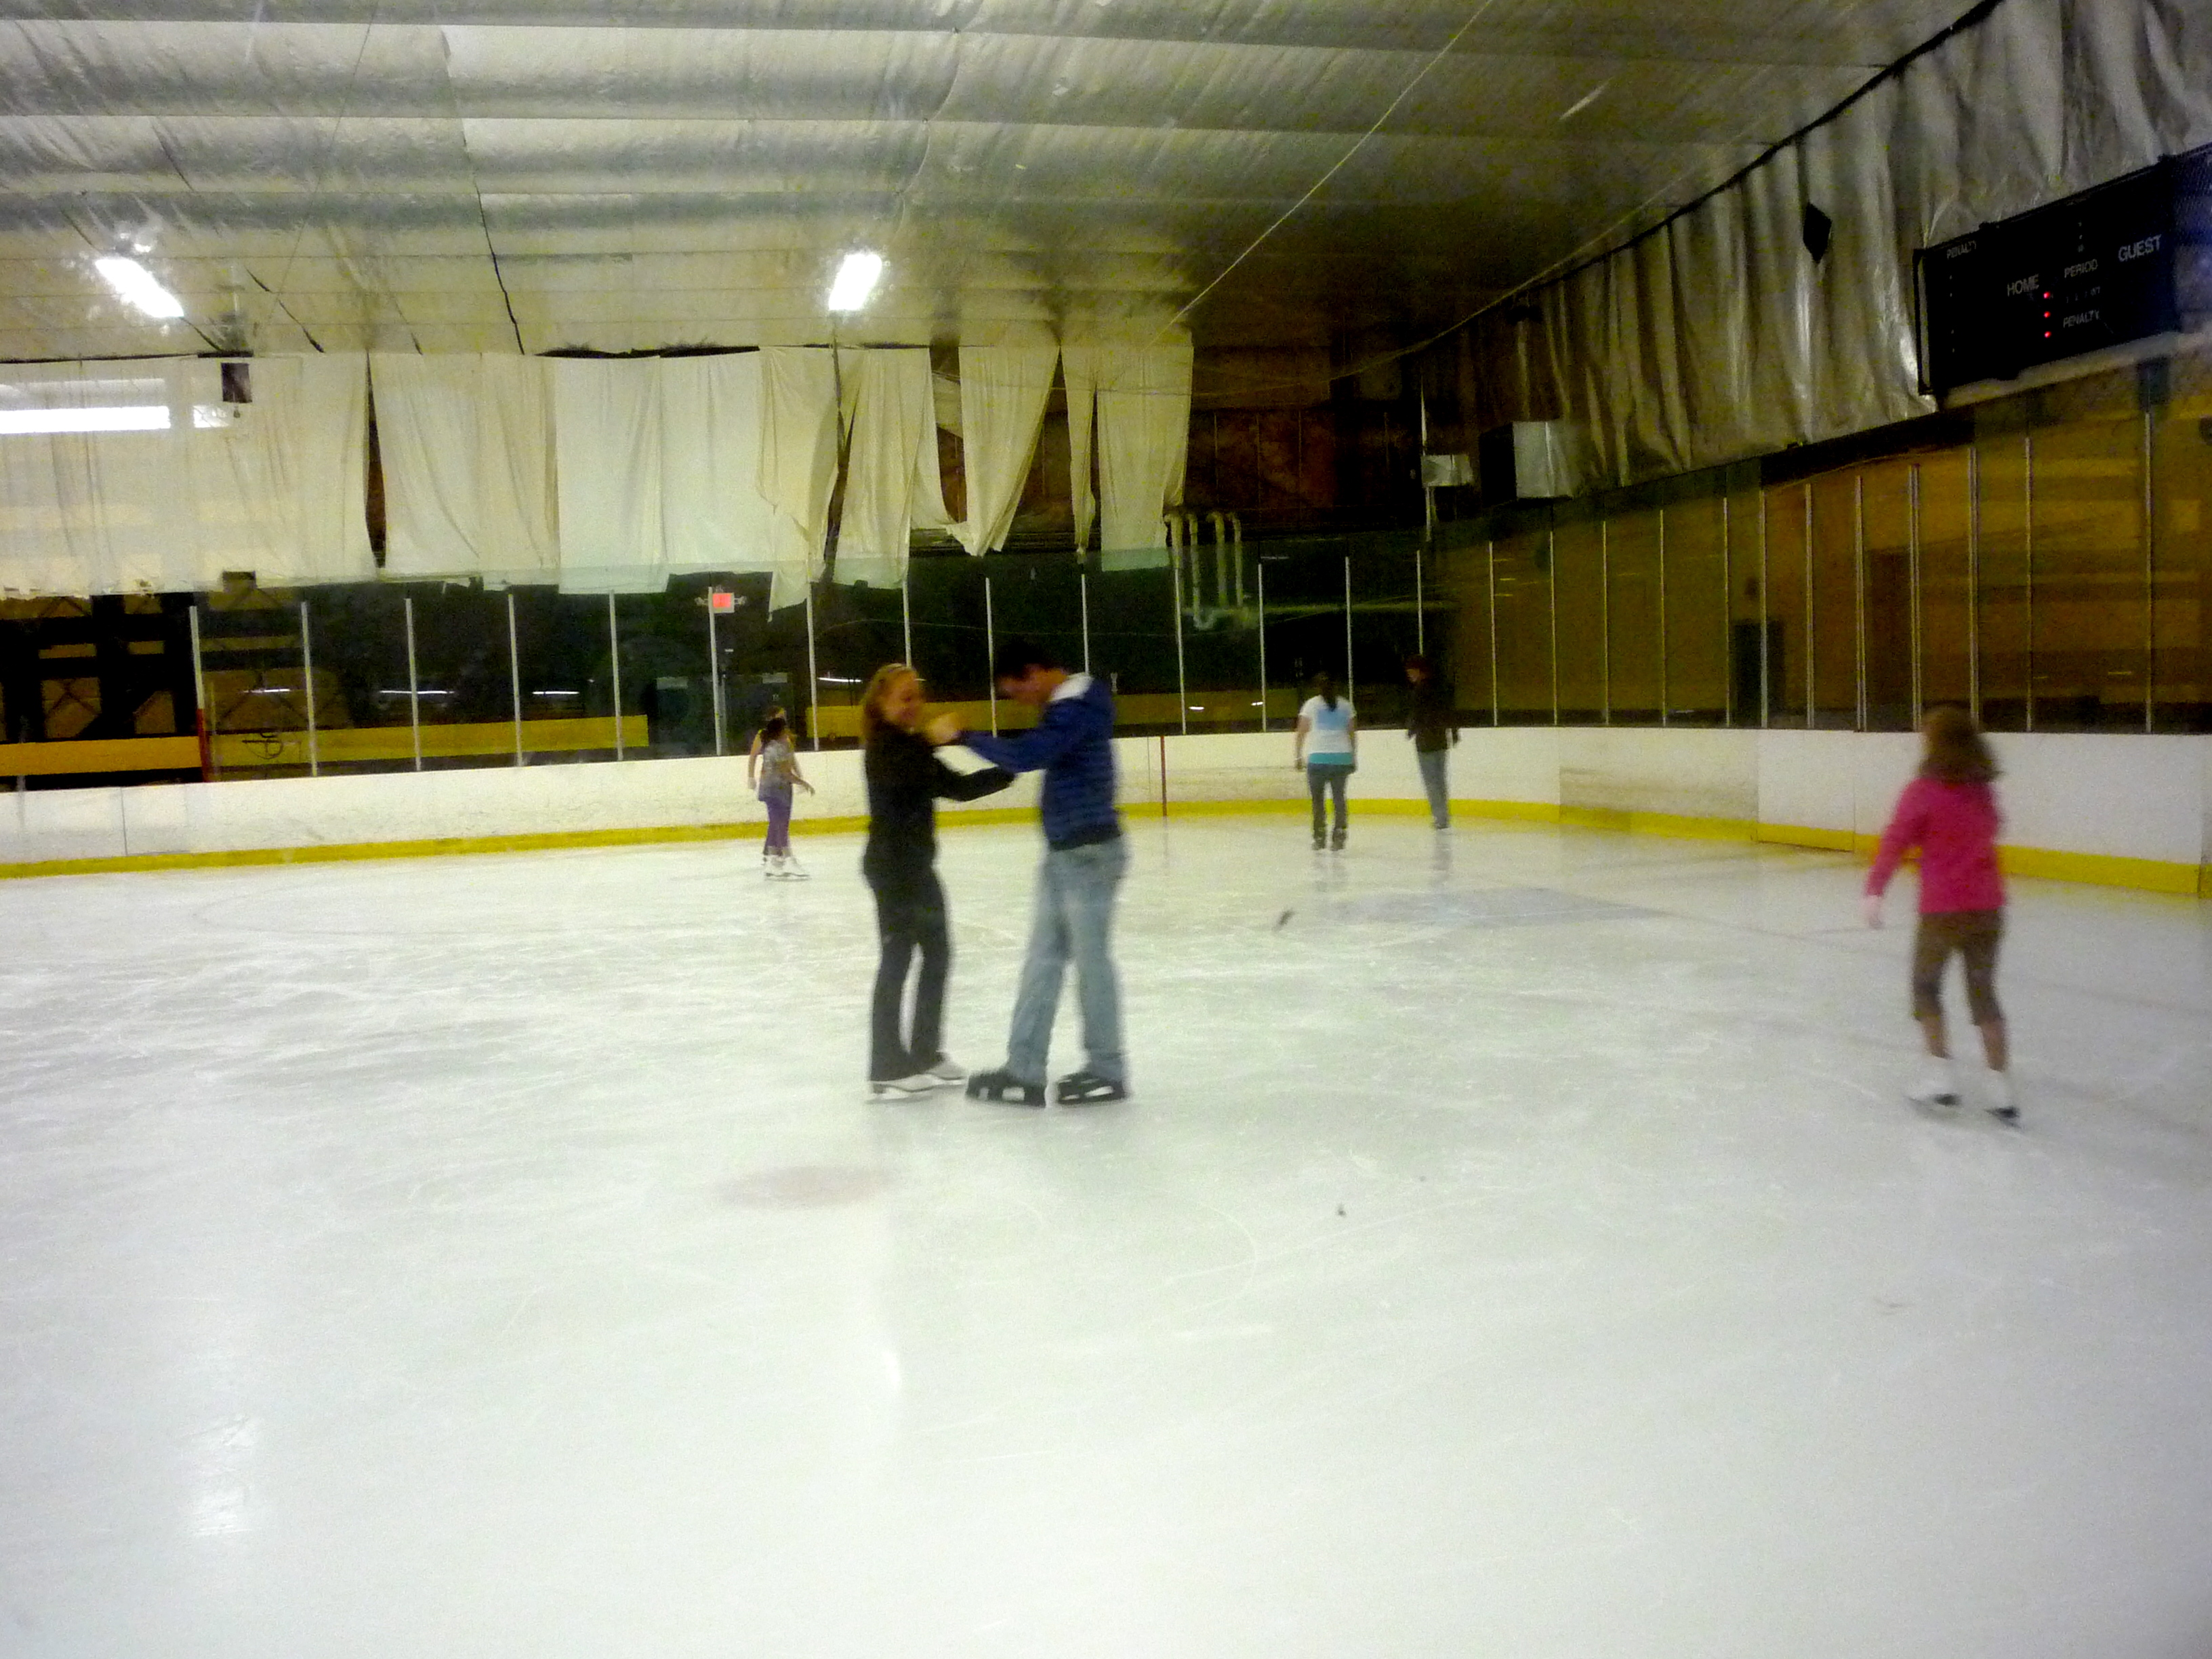 Local Indoor Skating Rinks: A Heat-Busting Day Trip Alternative